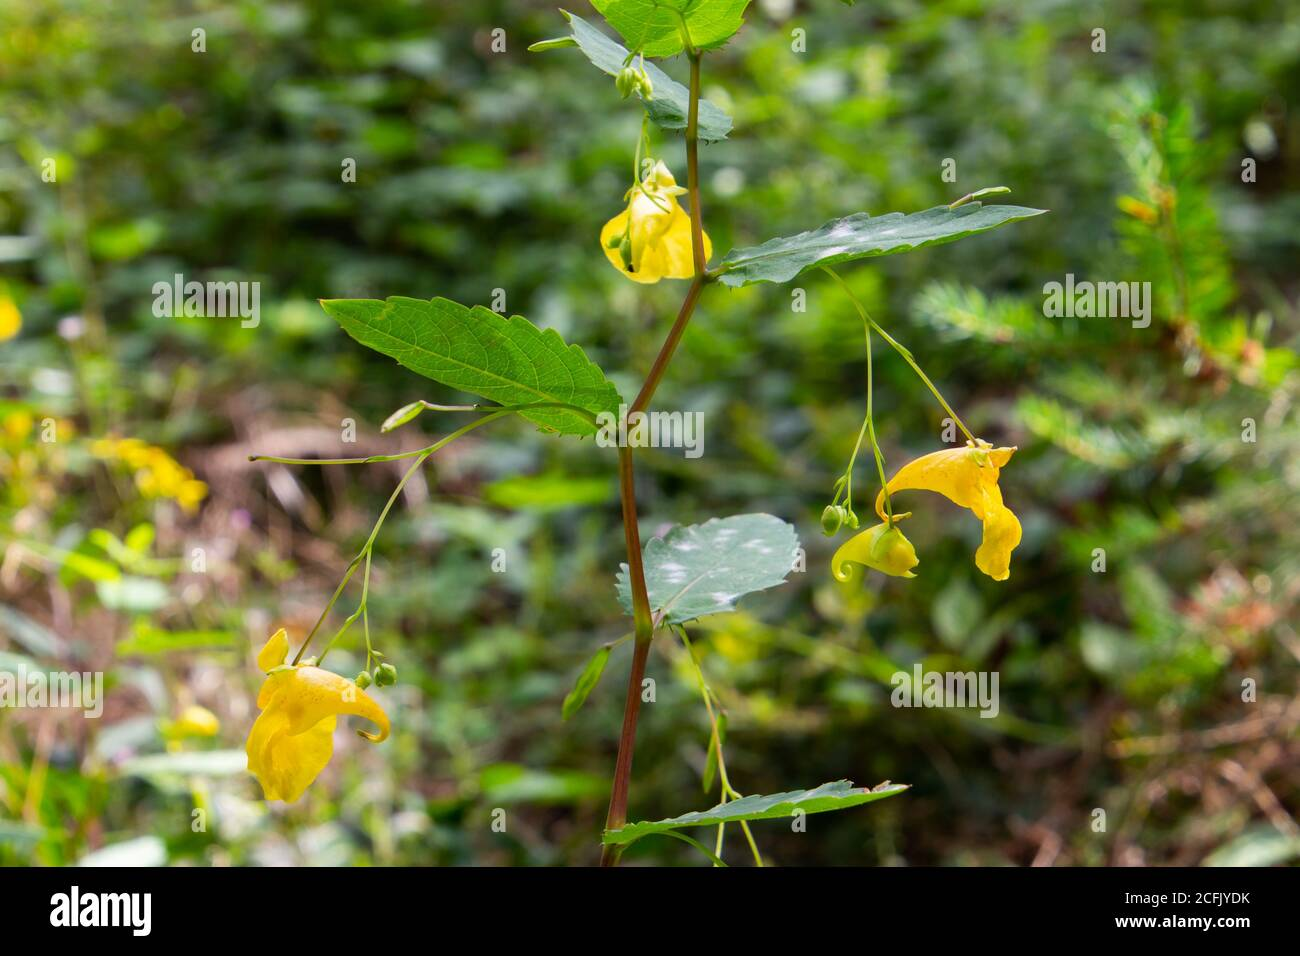 Touch me not Balsam growing in the forest, also called Impatiens noli tangere or Grosses Springkraut Stock Photo